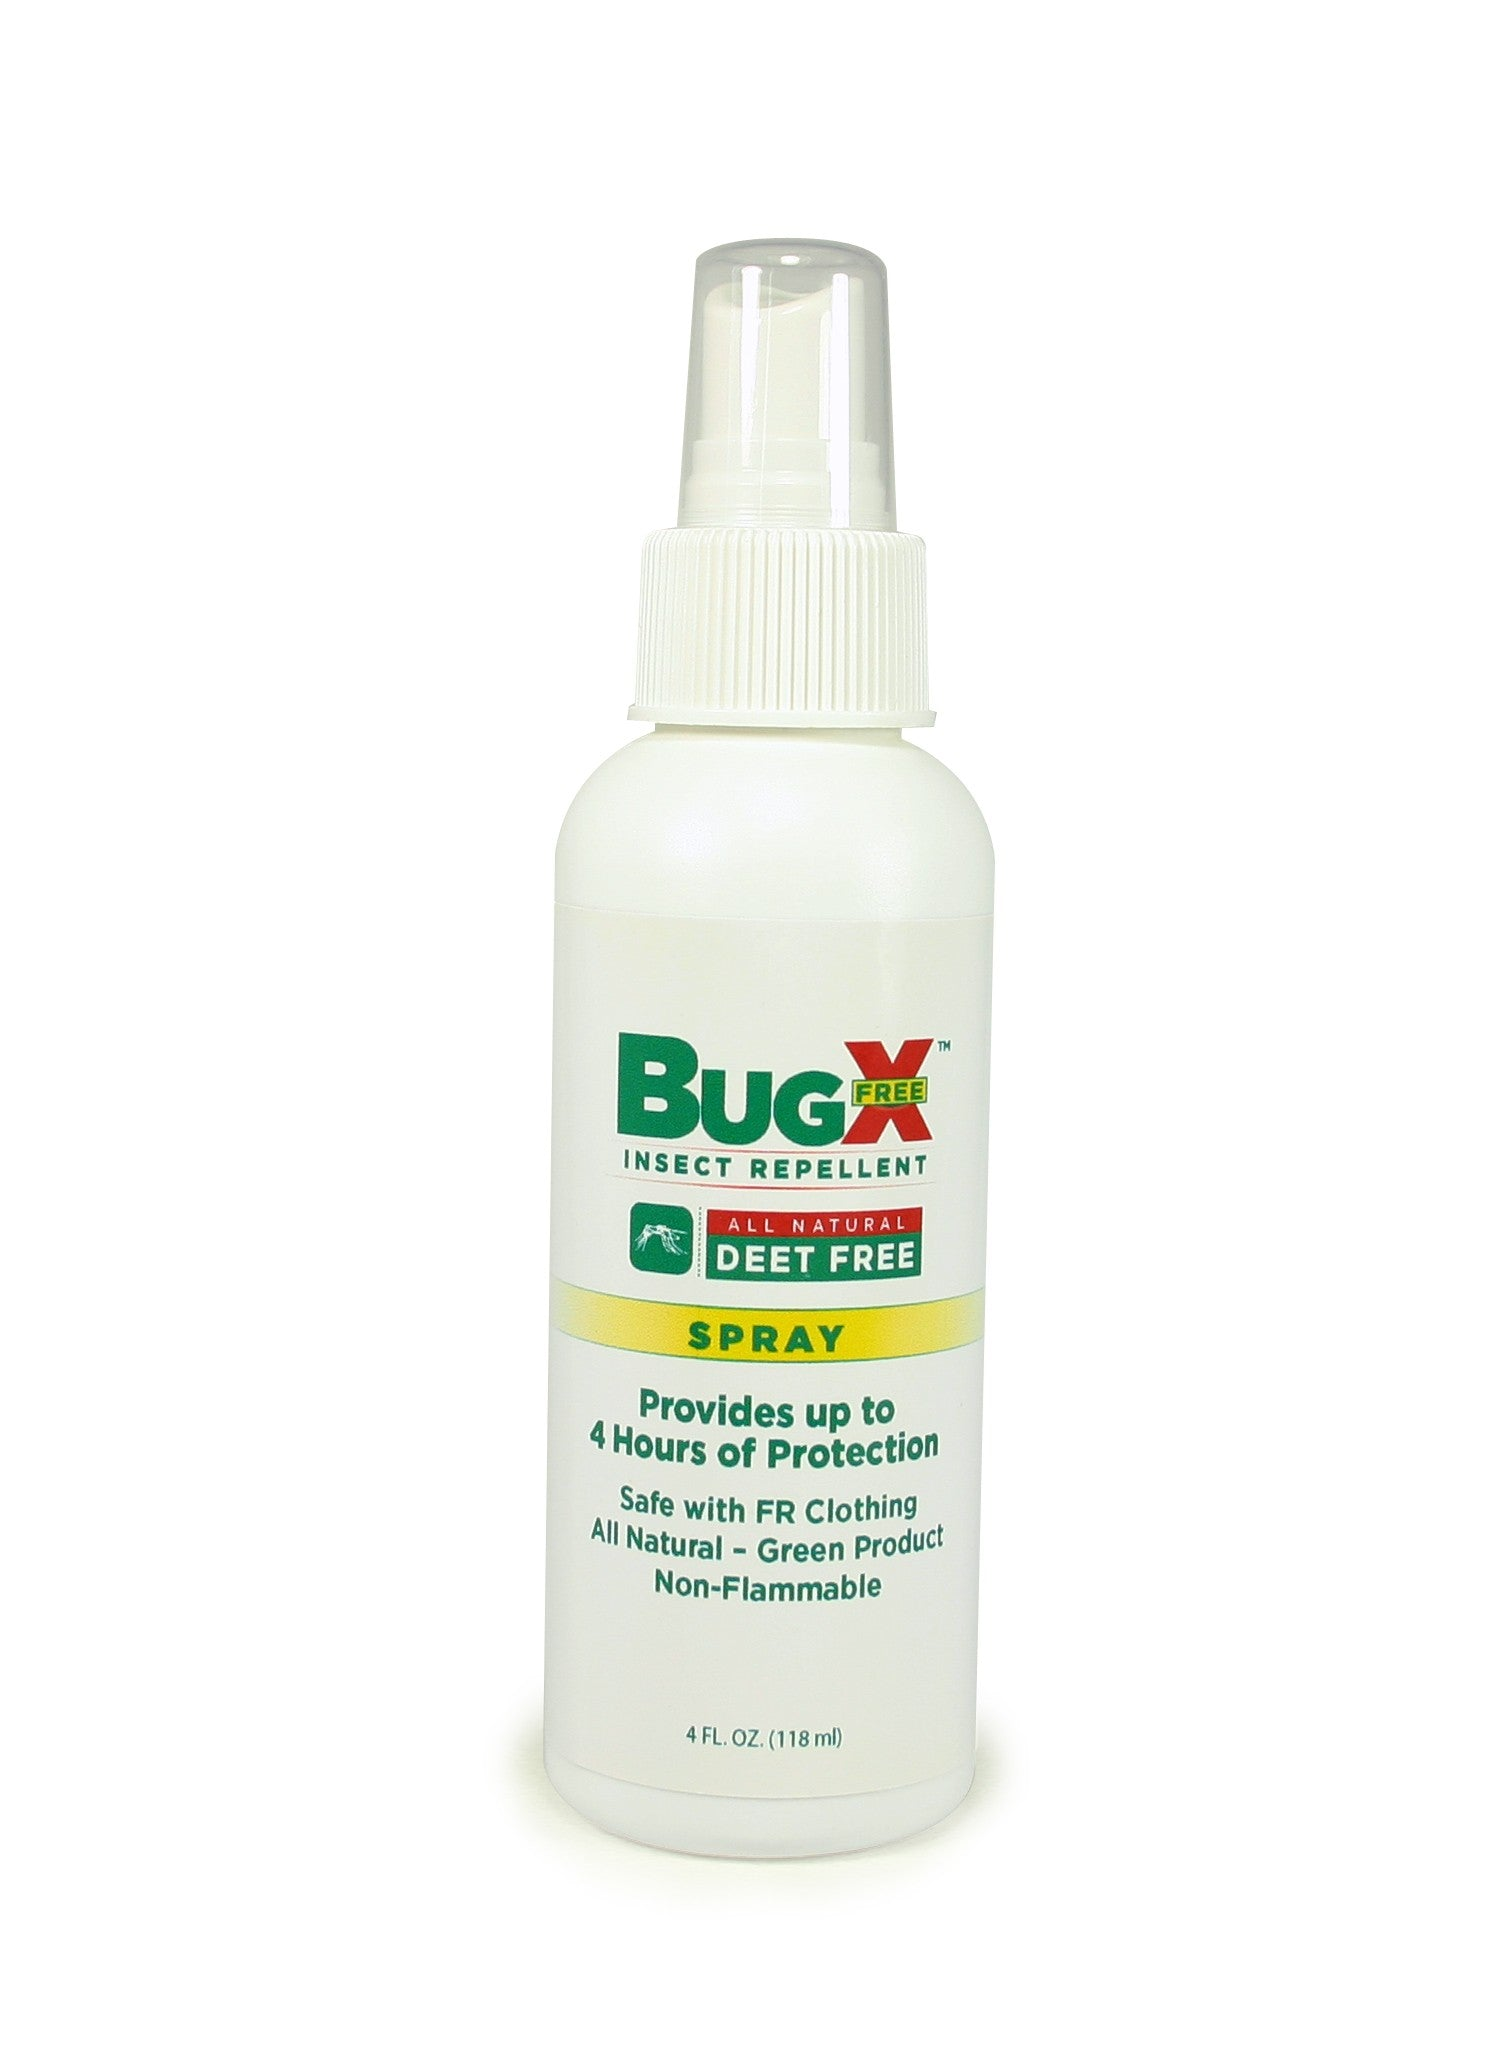 BugX DEET FREE Insect Repellent Spray, 4 Oz. Bottle, Case Of 12 - BS-FAK-18-804-1-FM